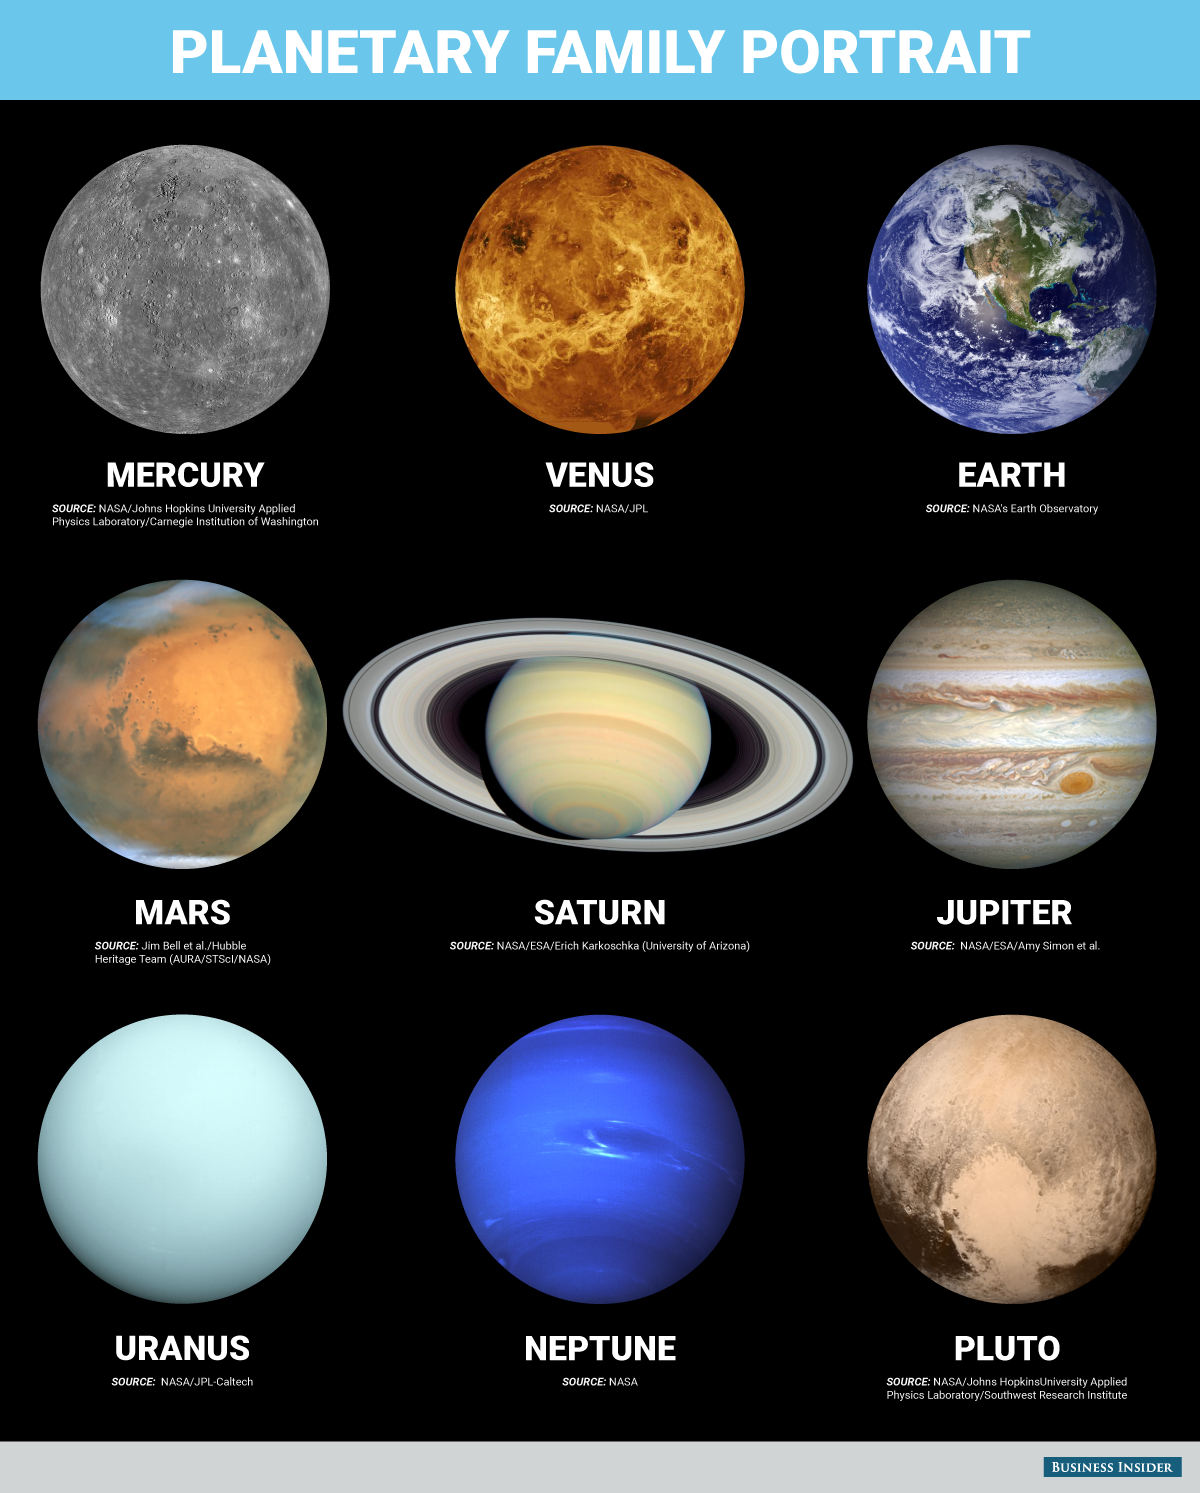 We Ve Finally Added Pluto To The Family Portrait Of The Solar System